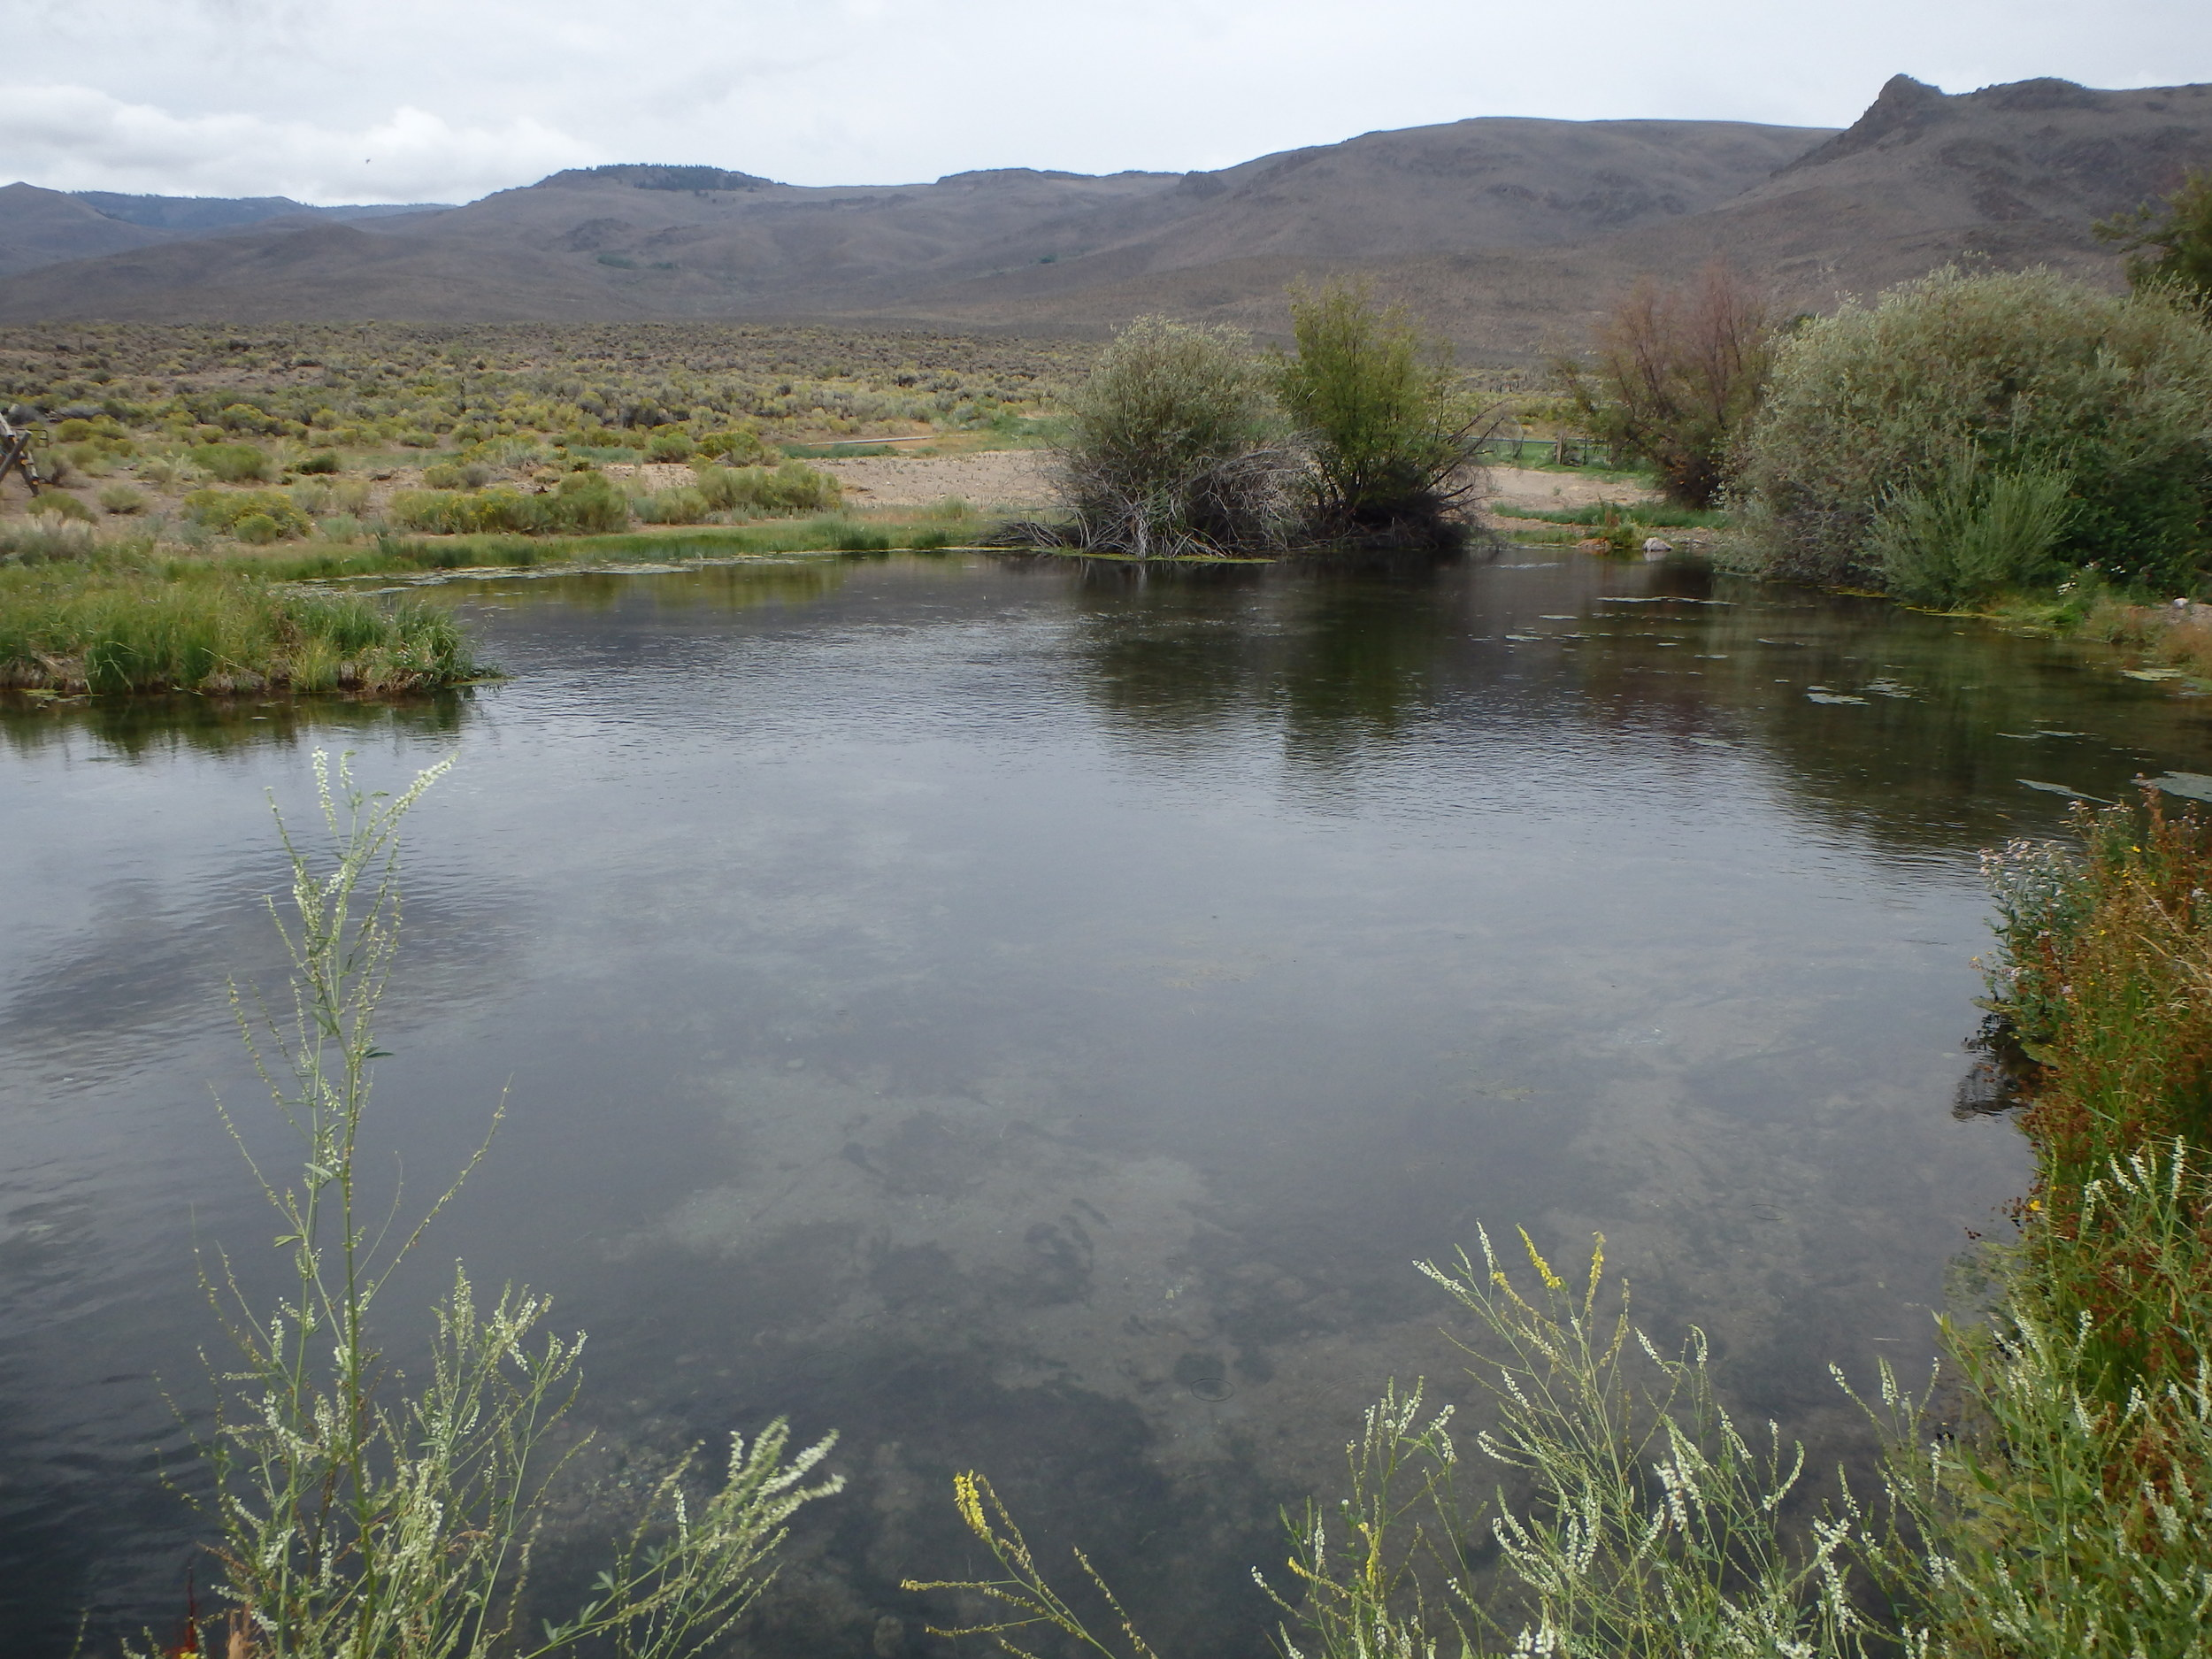 Fall 2014 - Before - the wide, slow creek offers minimal trout habitat